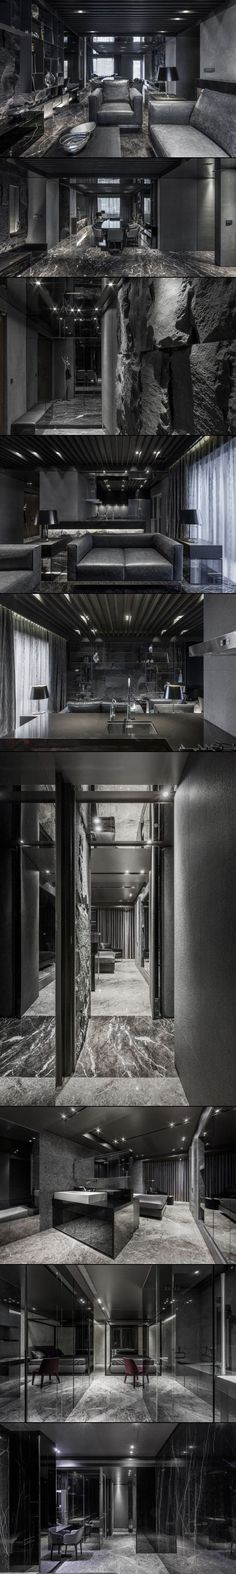 "Daring Monochromatic Interior Scheme: ""Home in Black Serenity"" in Taipei"